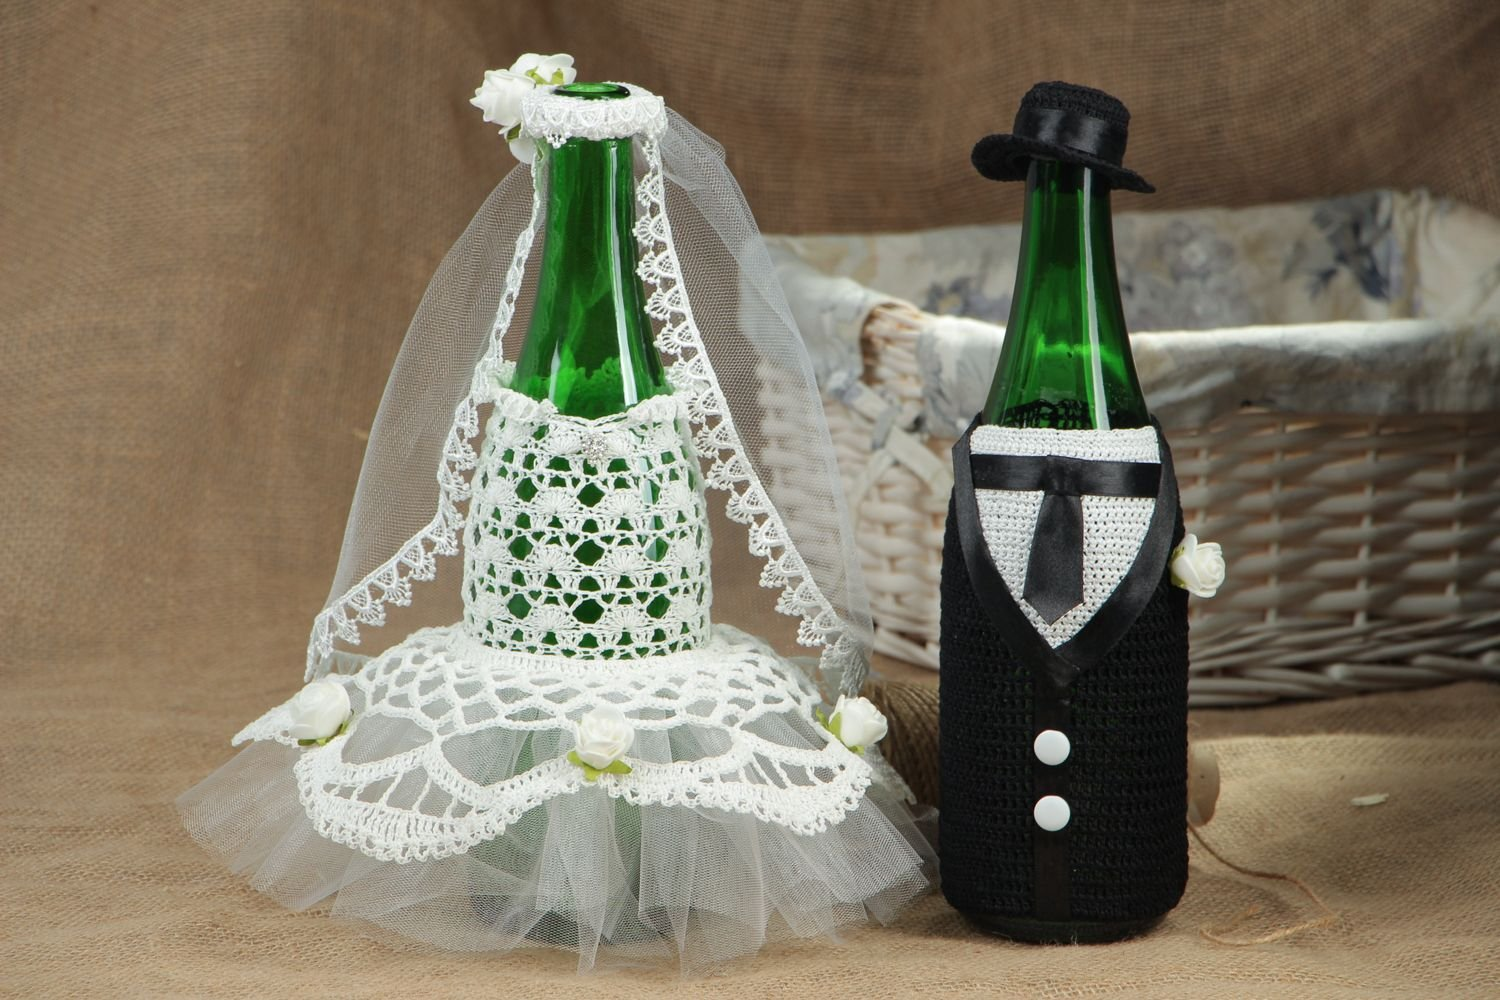 Decoracion para botellas de boda hecha a mano: Amazon.es: Hogar